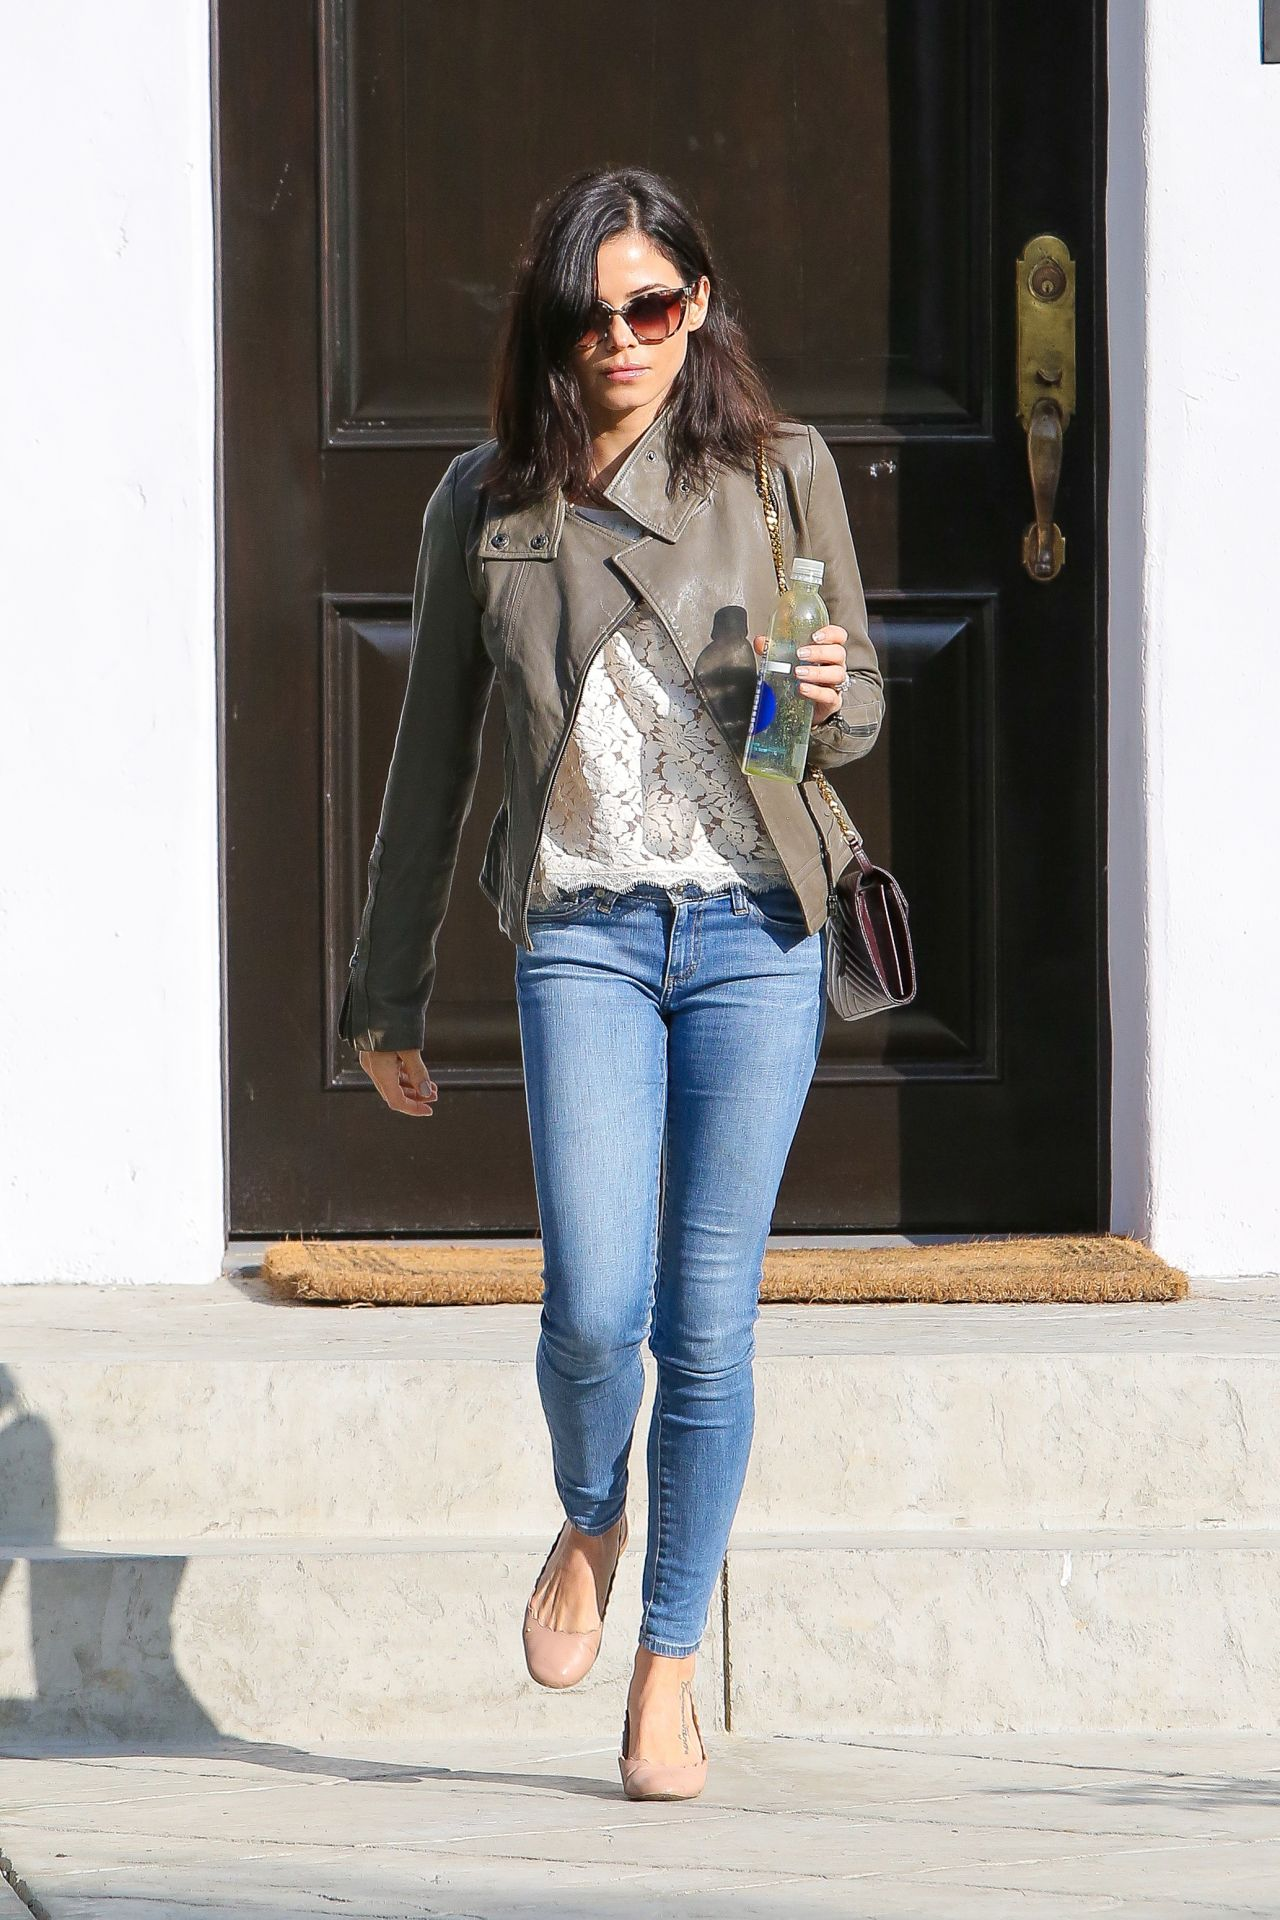 Jenna dewan in jeans leaving a house in beverly hills House jeansy